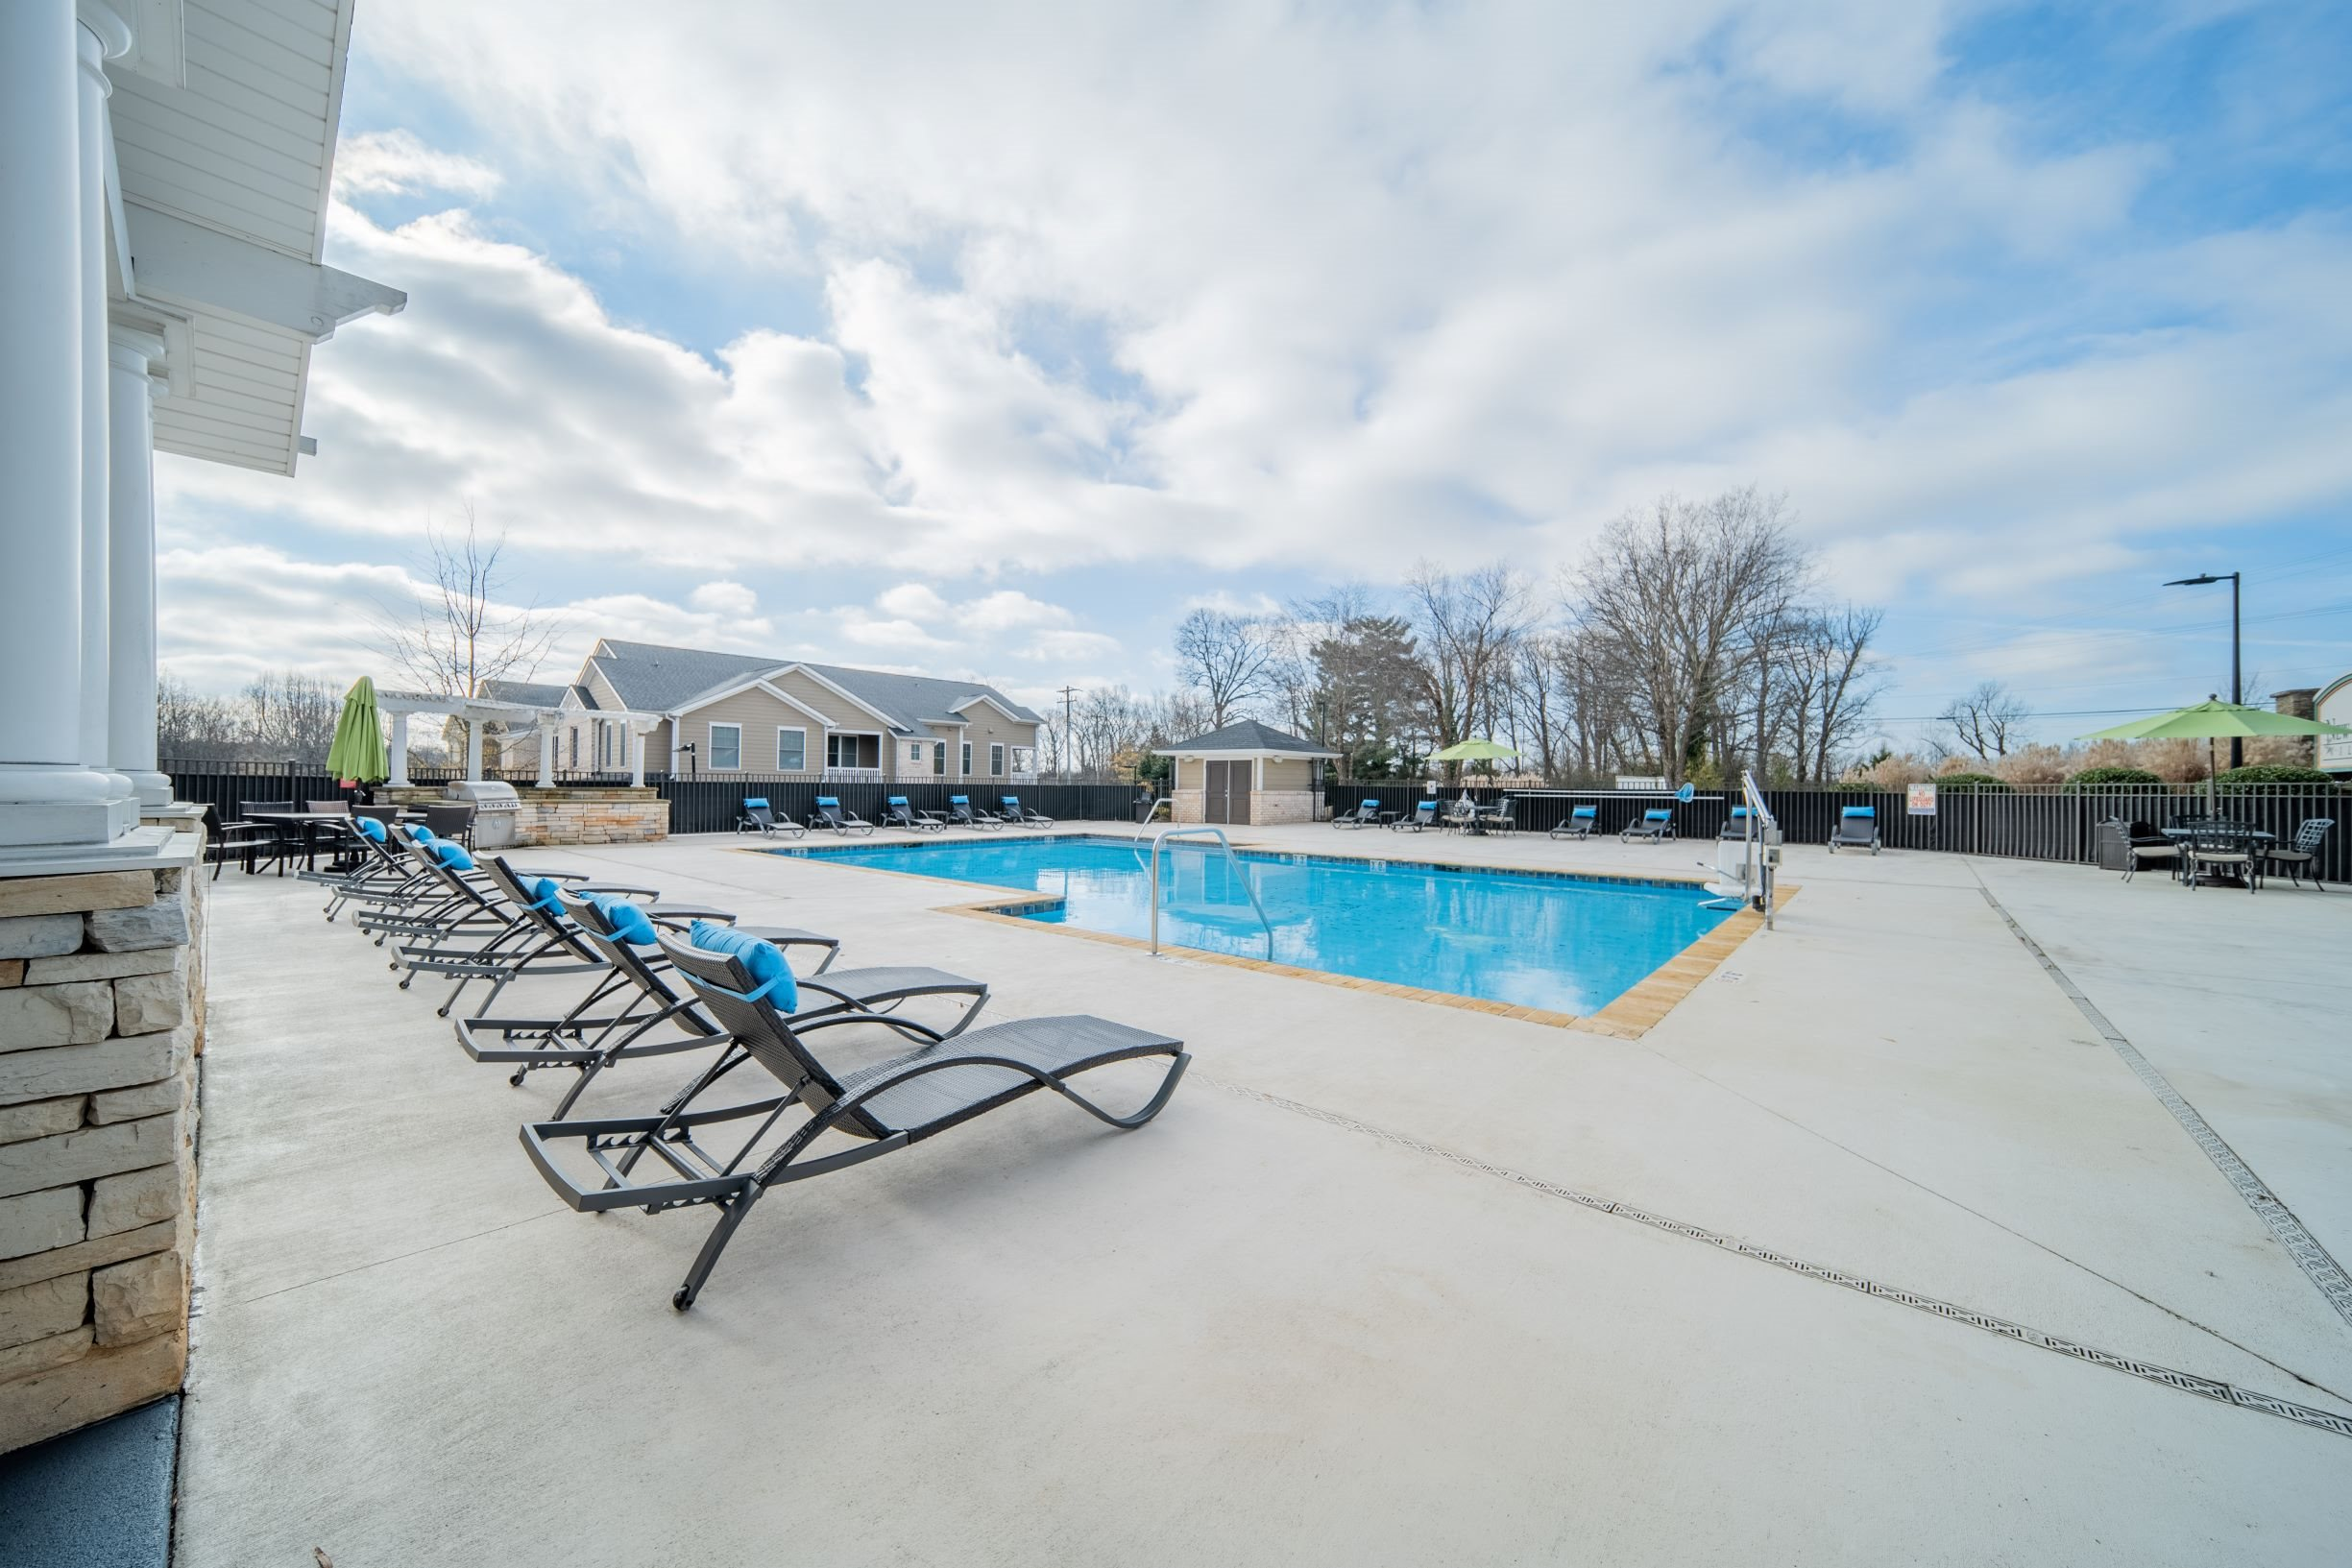 Sparkling swimming pool and spacious sundeck at Piedmont Place apartments in Greensboro, NC